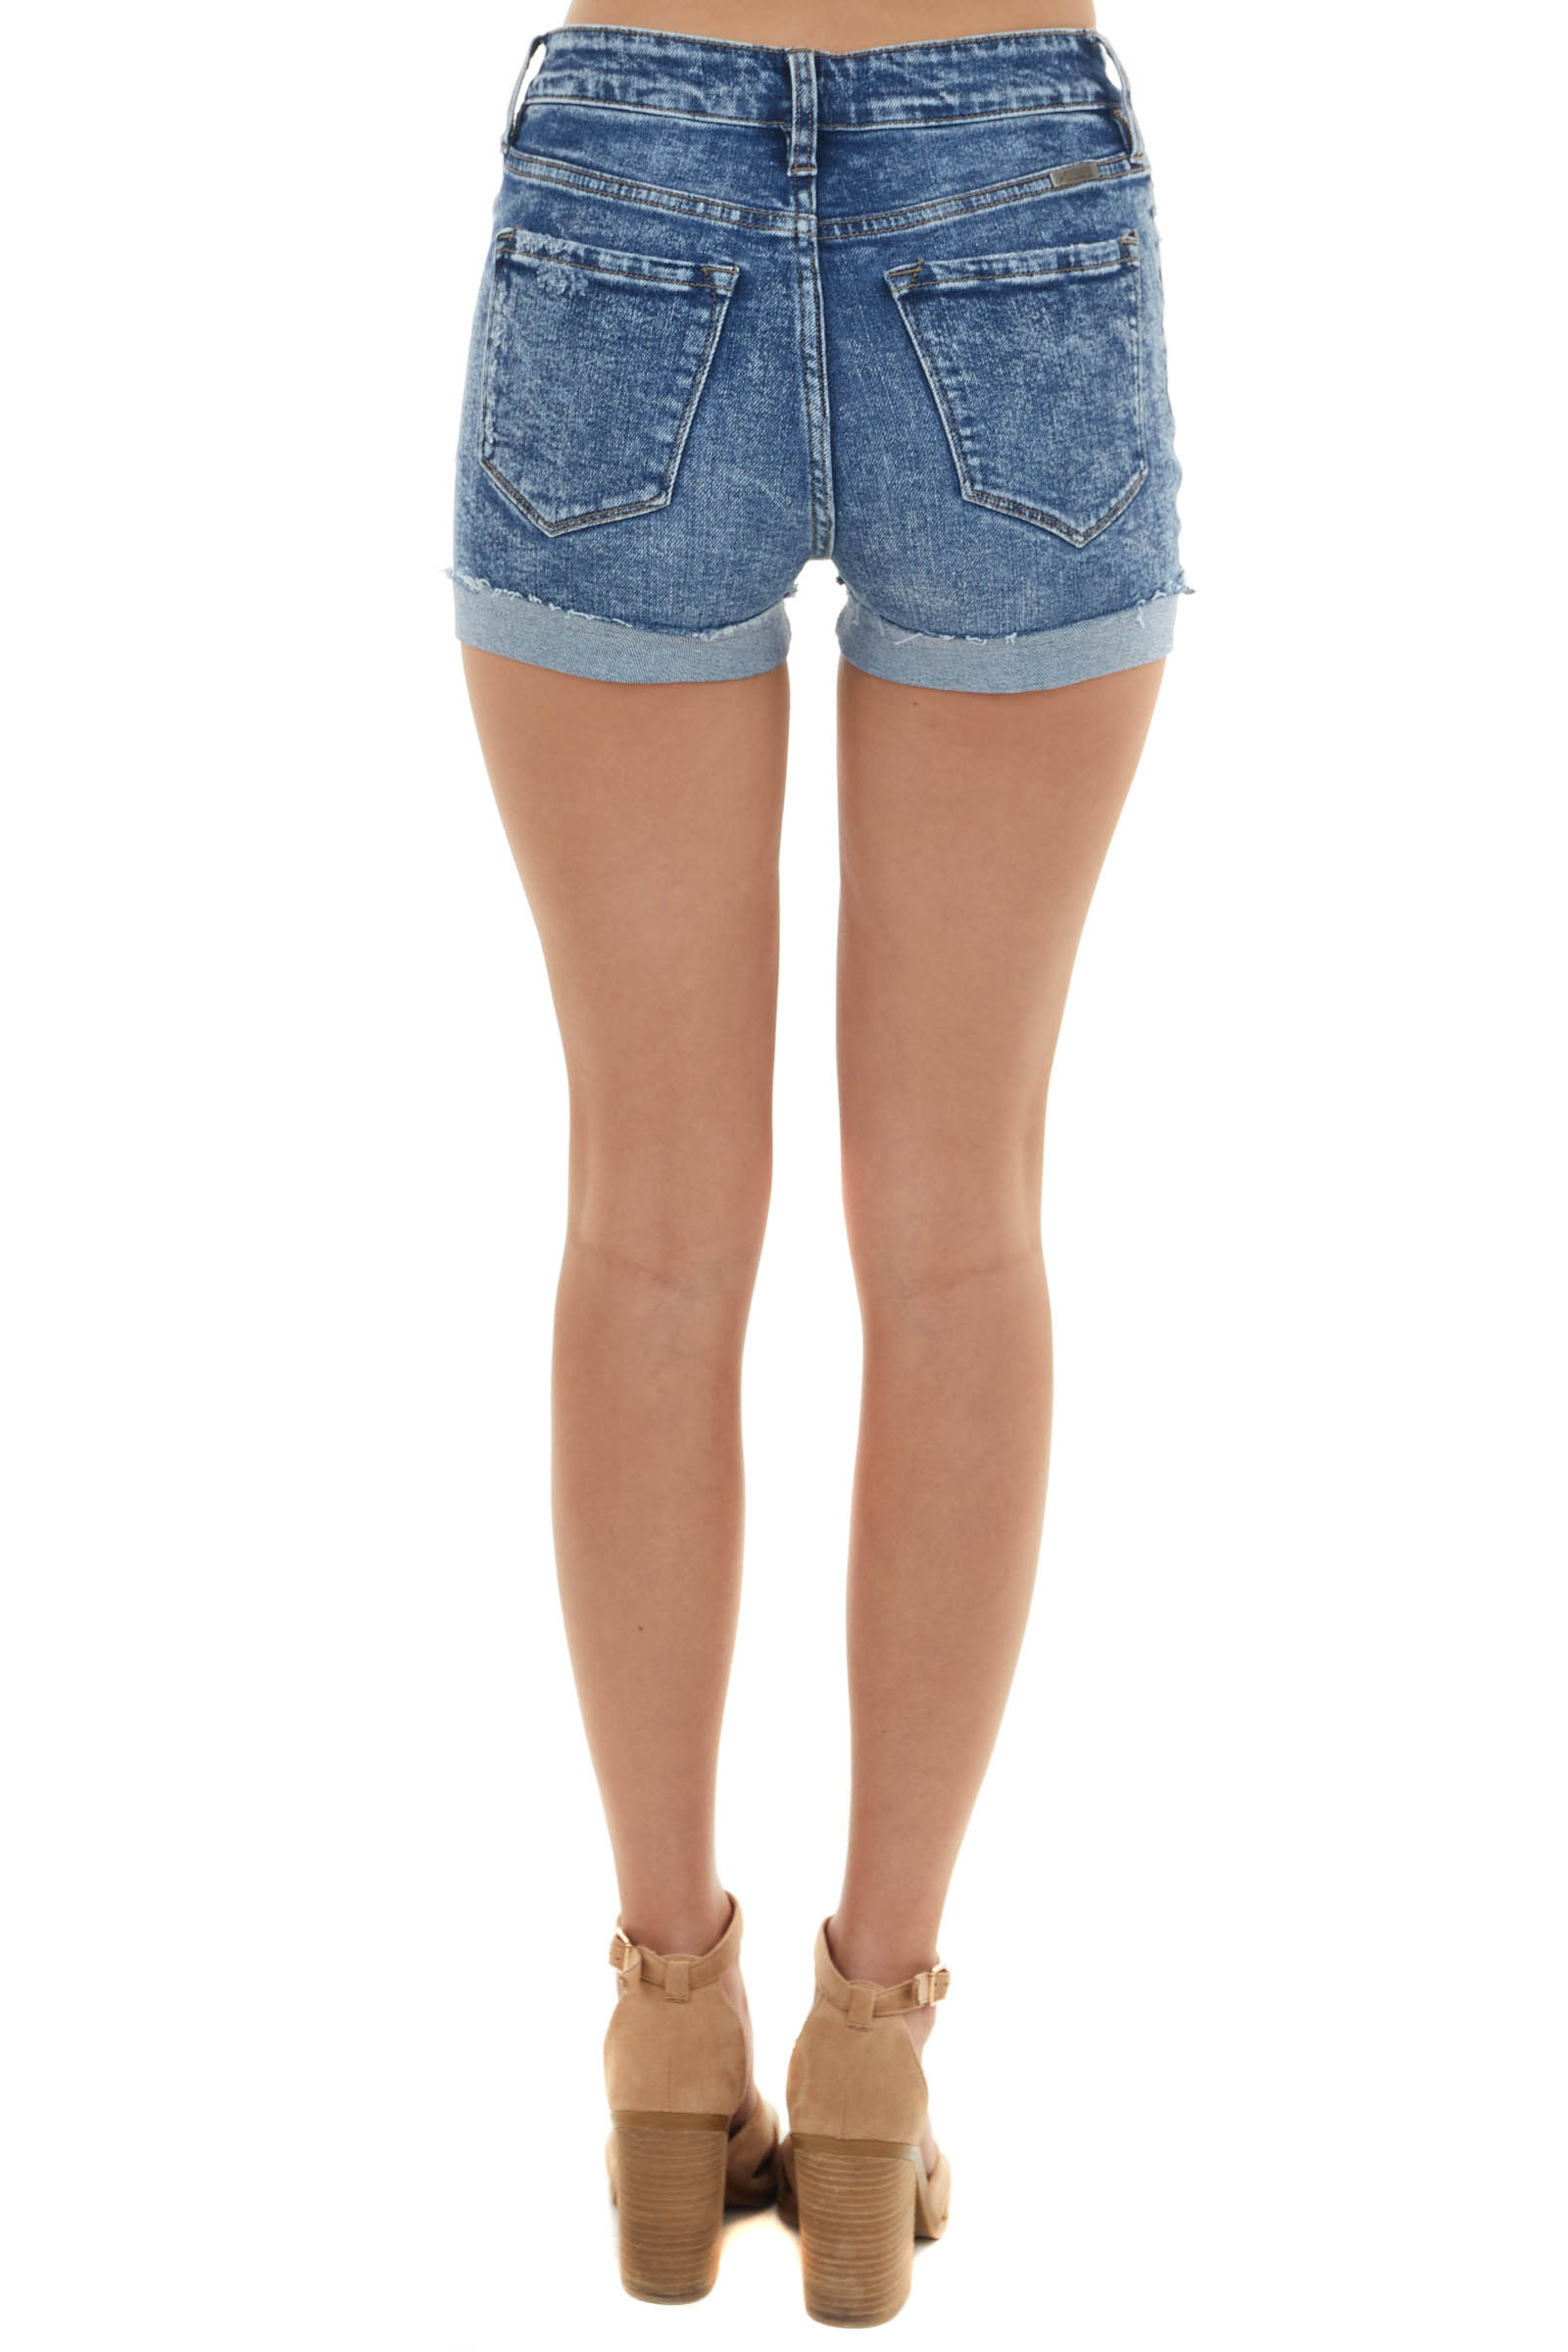 Dark Wash High Rise Shorts with Distress and Button Detail